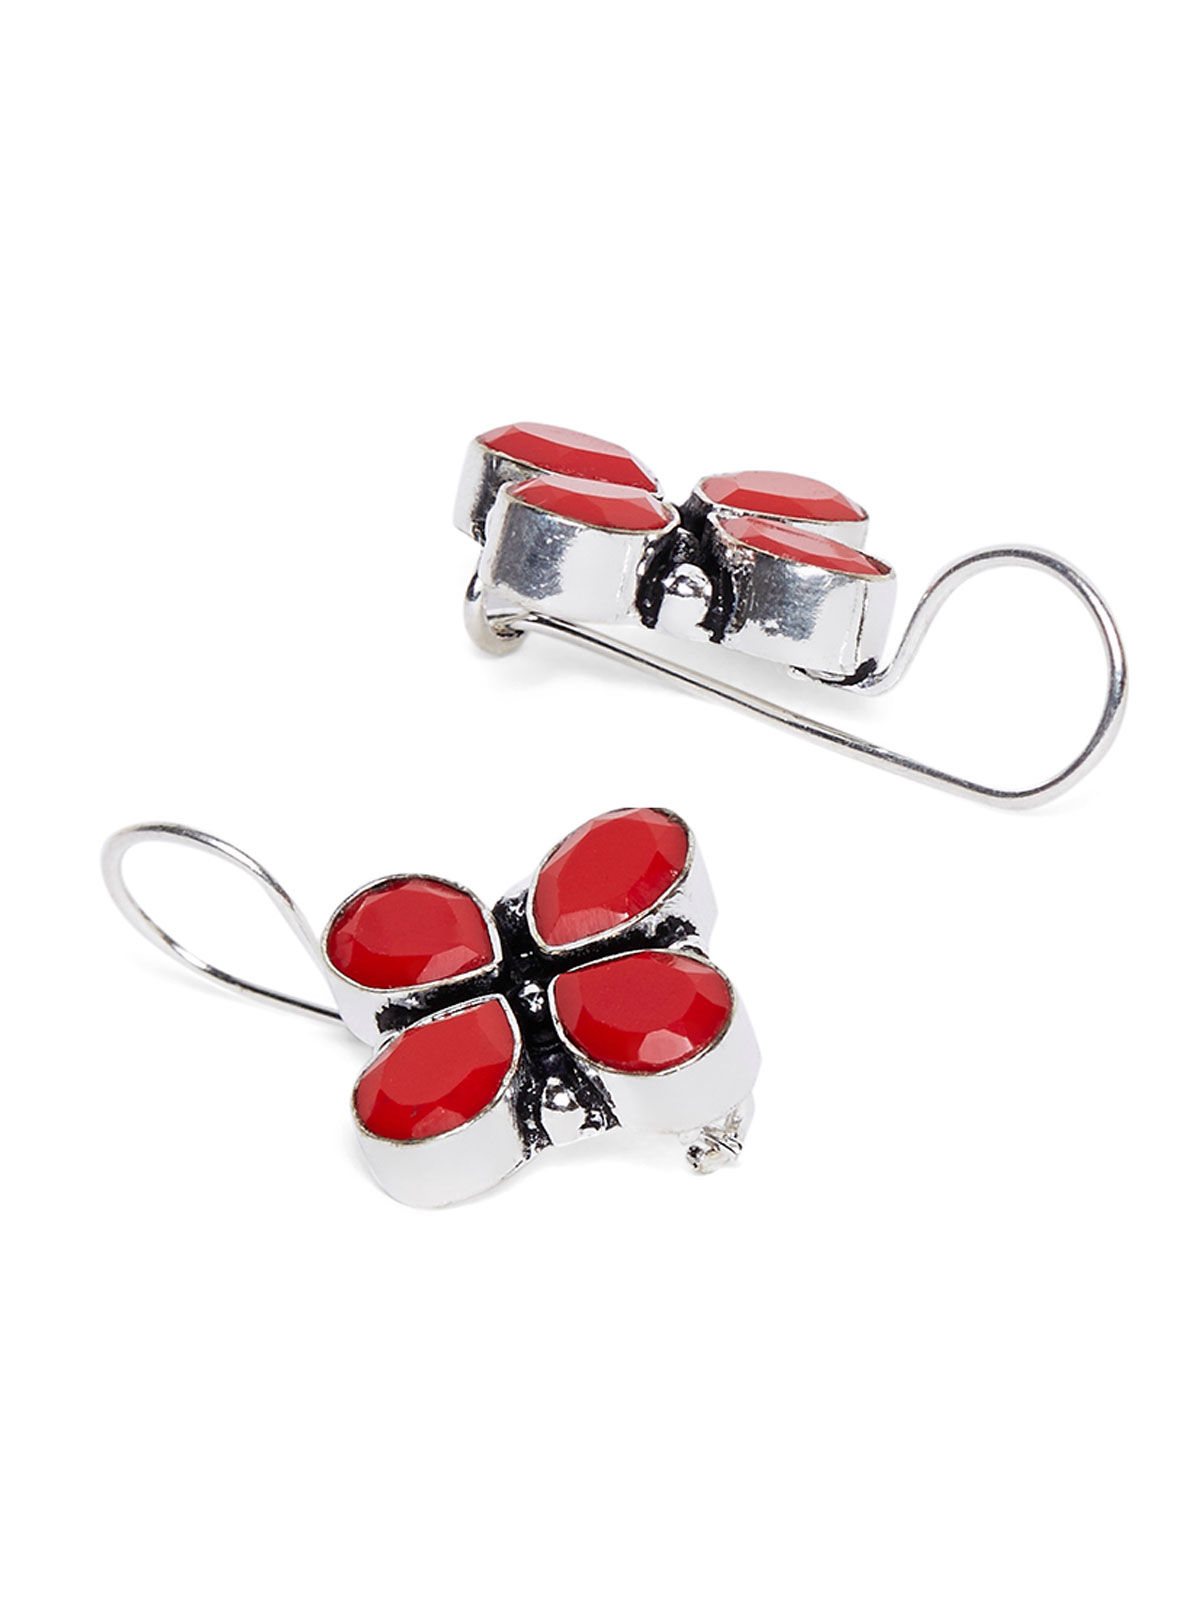 Imli Street flower beeded red jewellery earrings